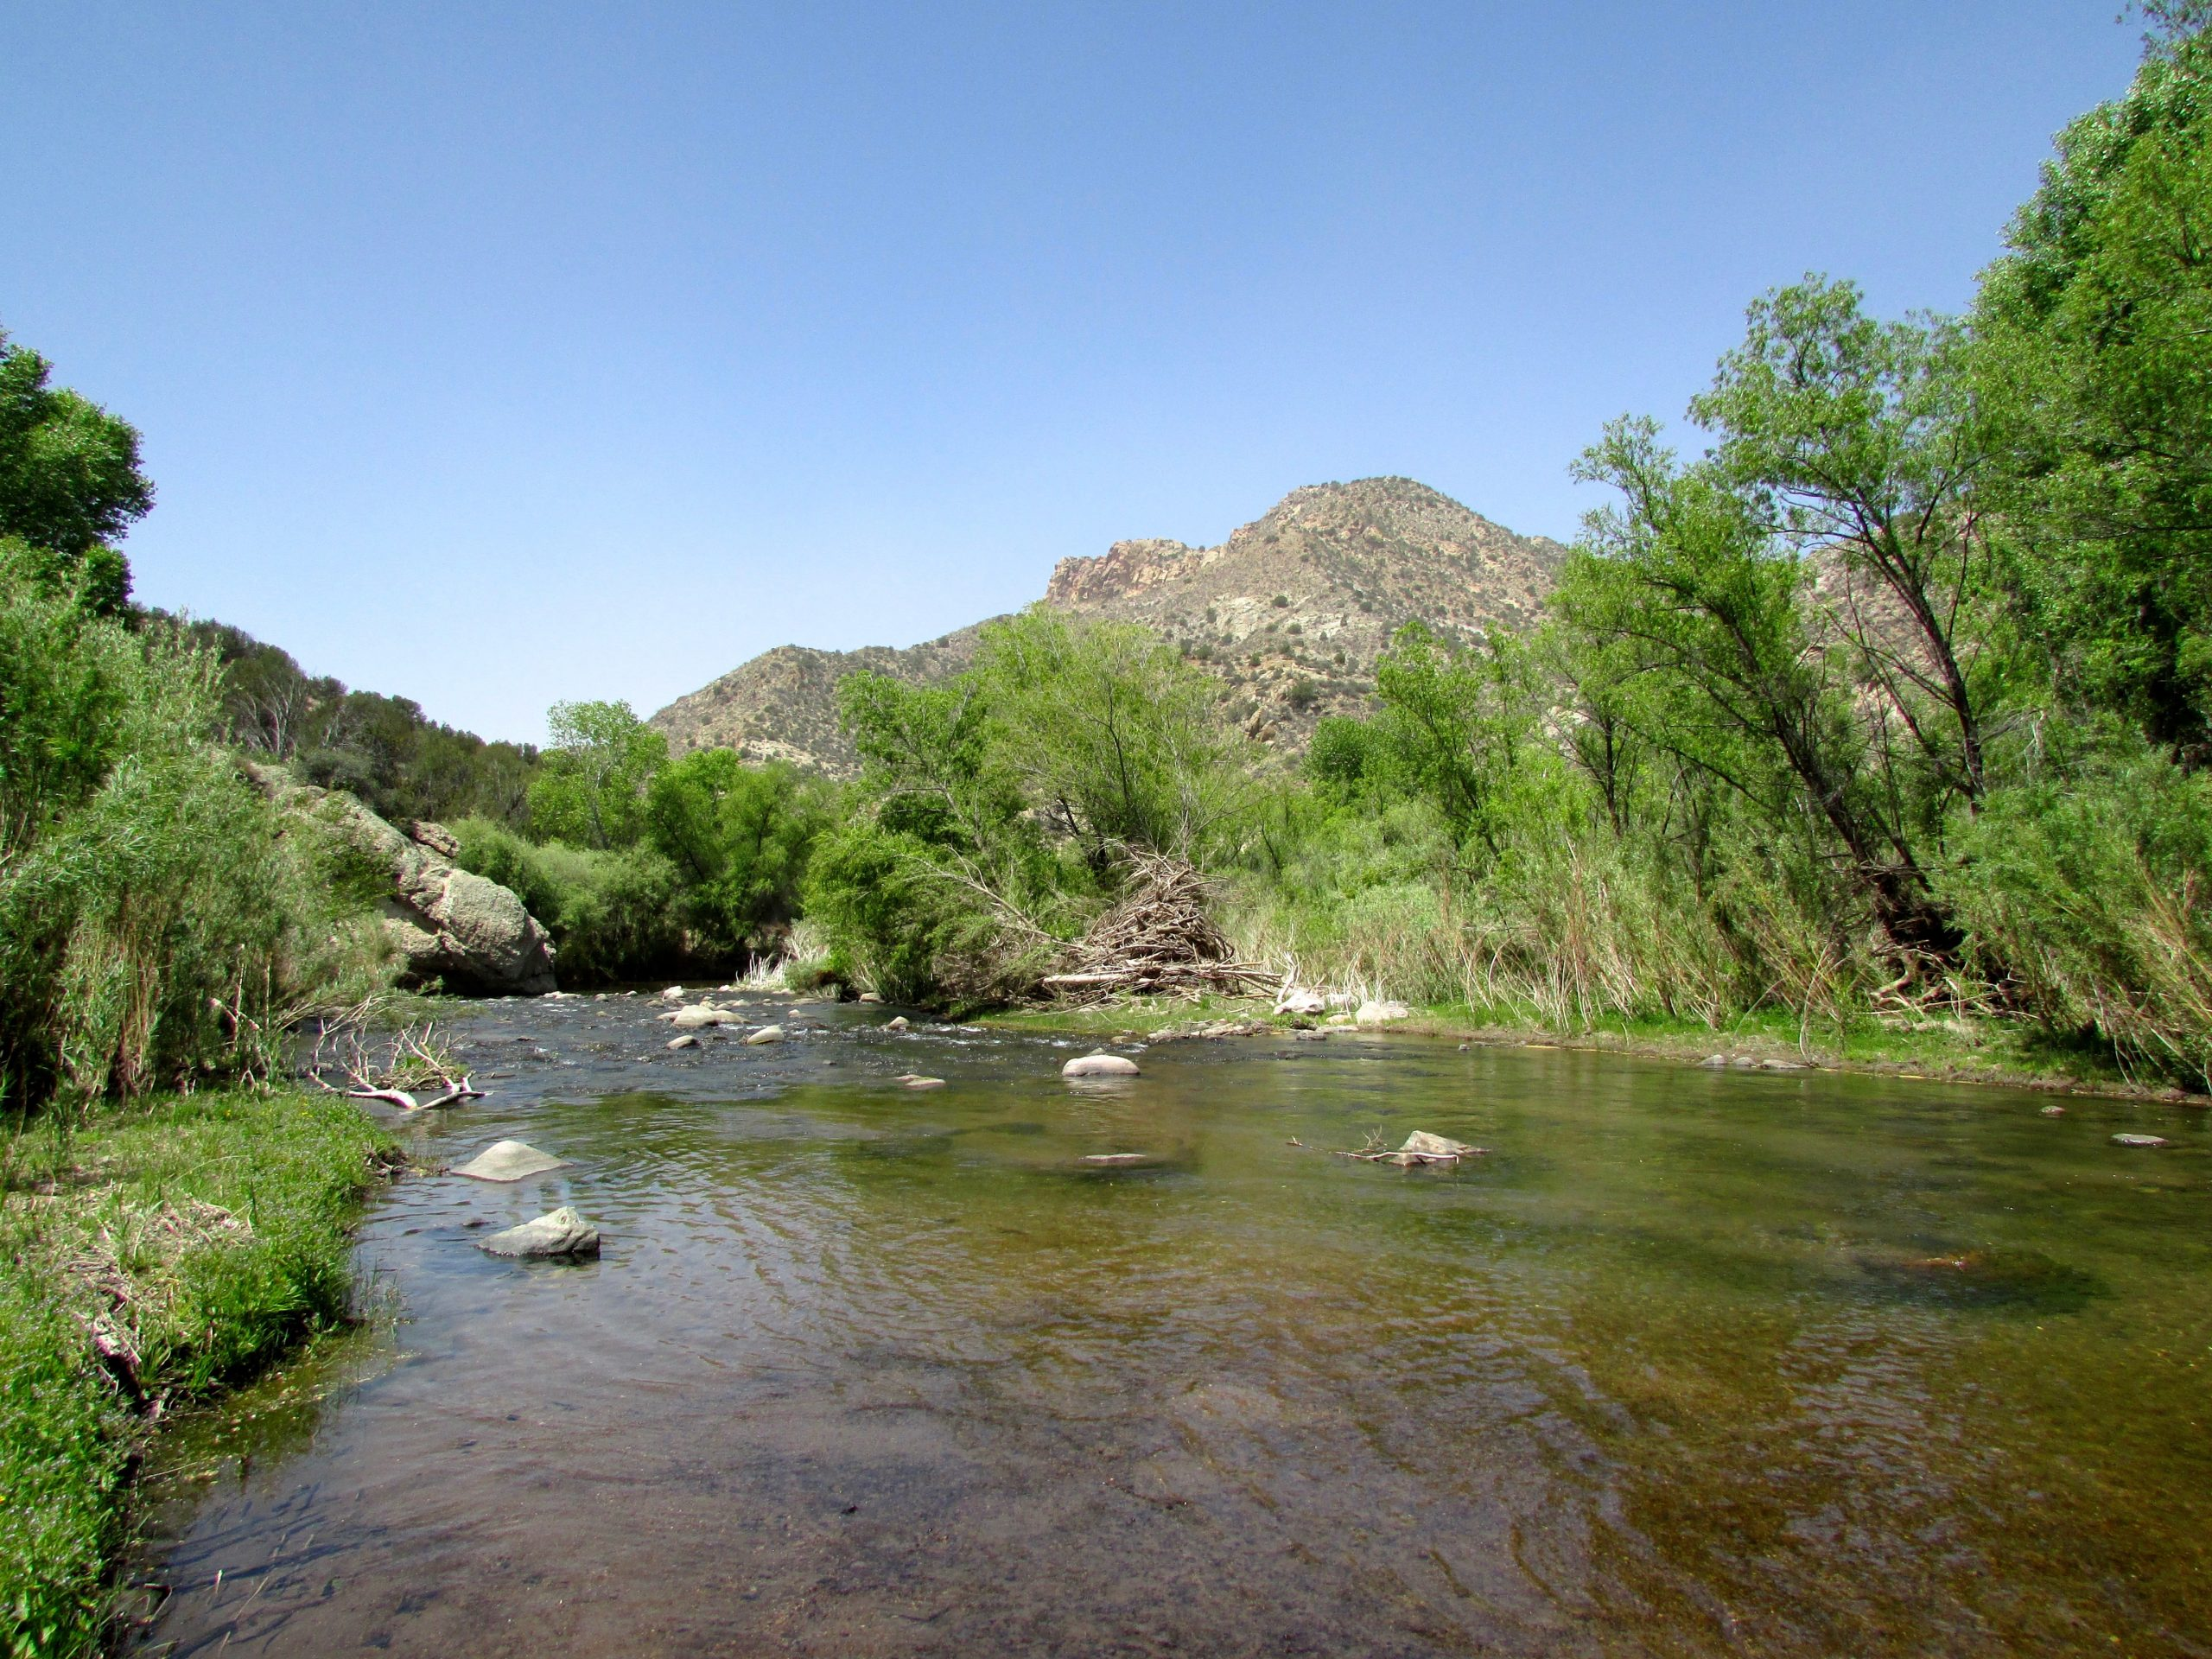 Santa Fe New Mexican: 'Wild' designation will protect the Gila